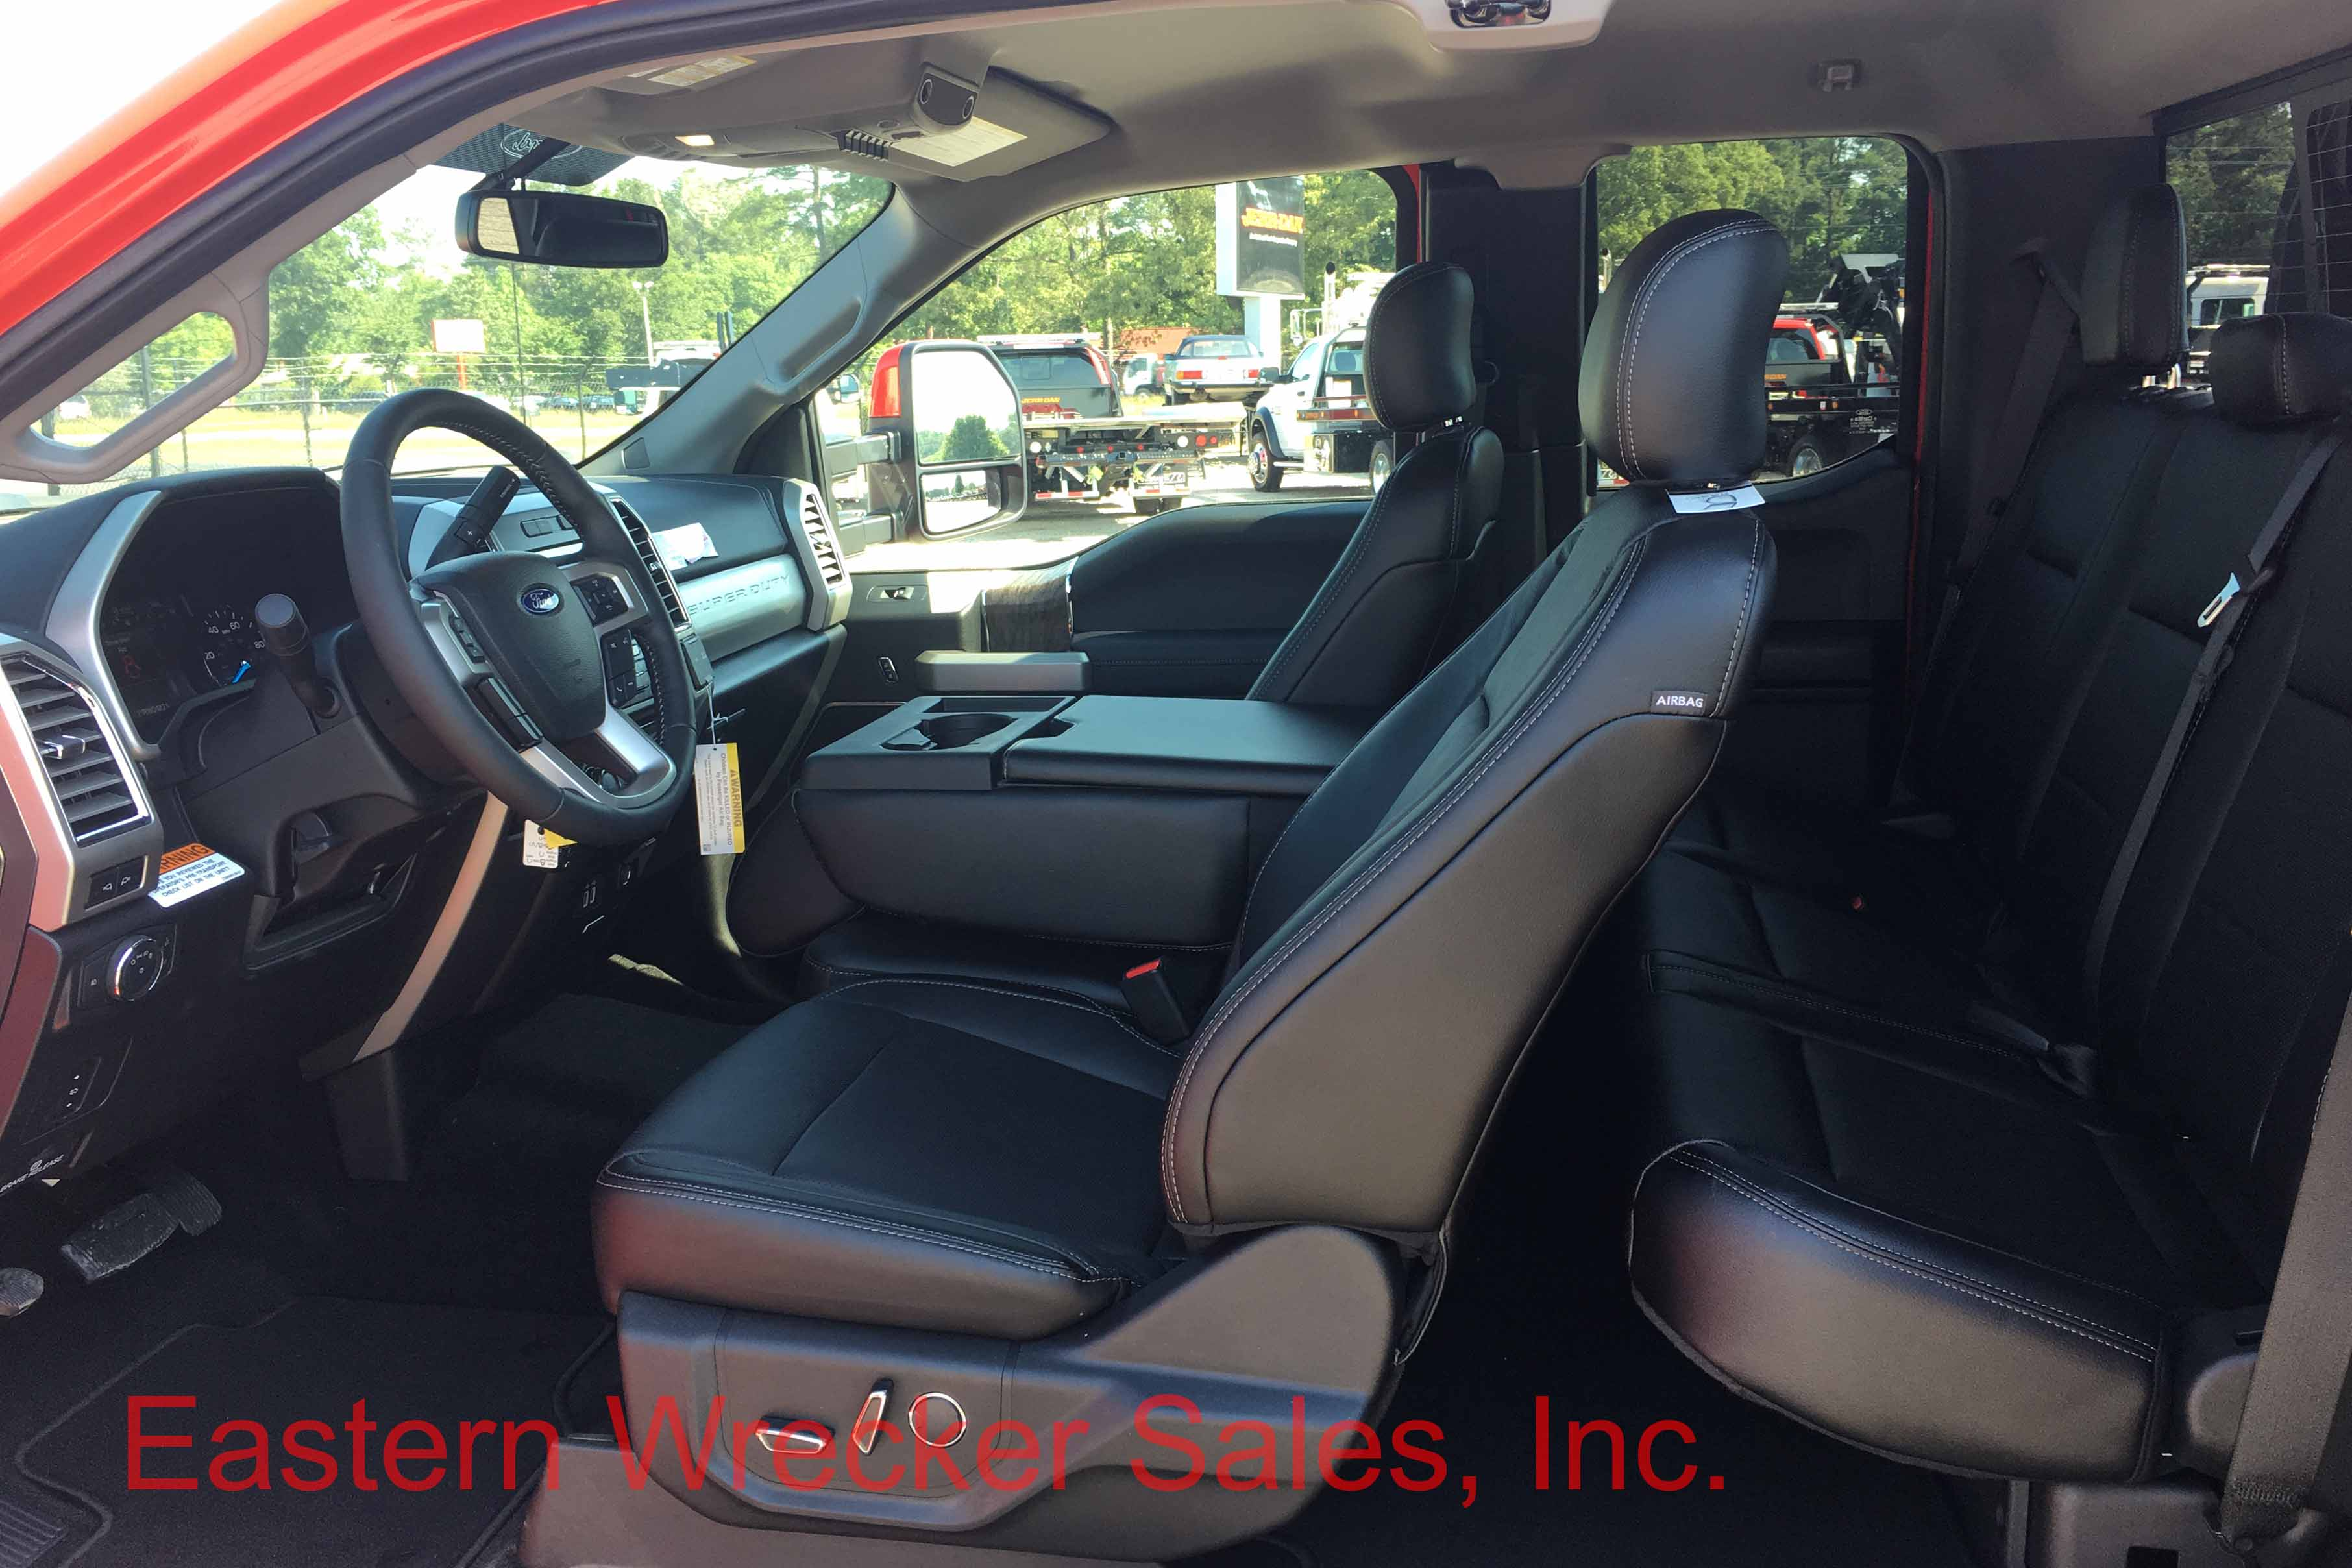 f4553 interior ford jerrdan tow truck for sale car carrier